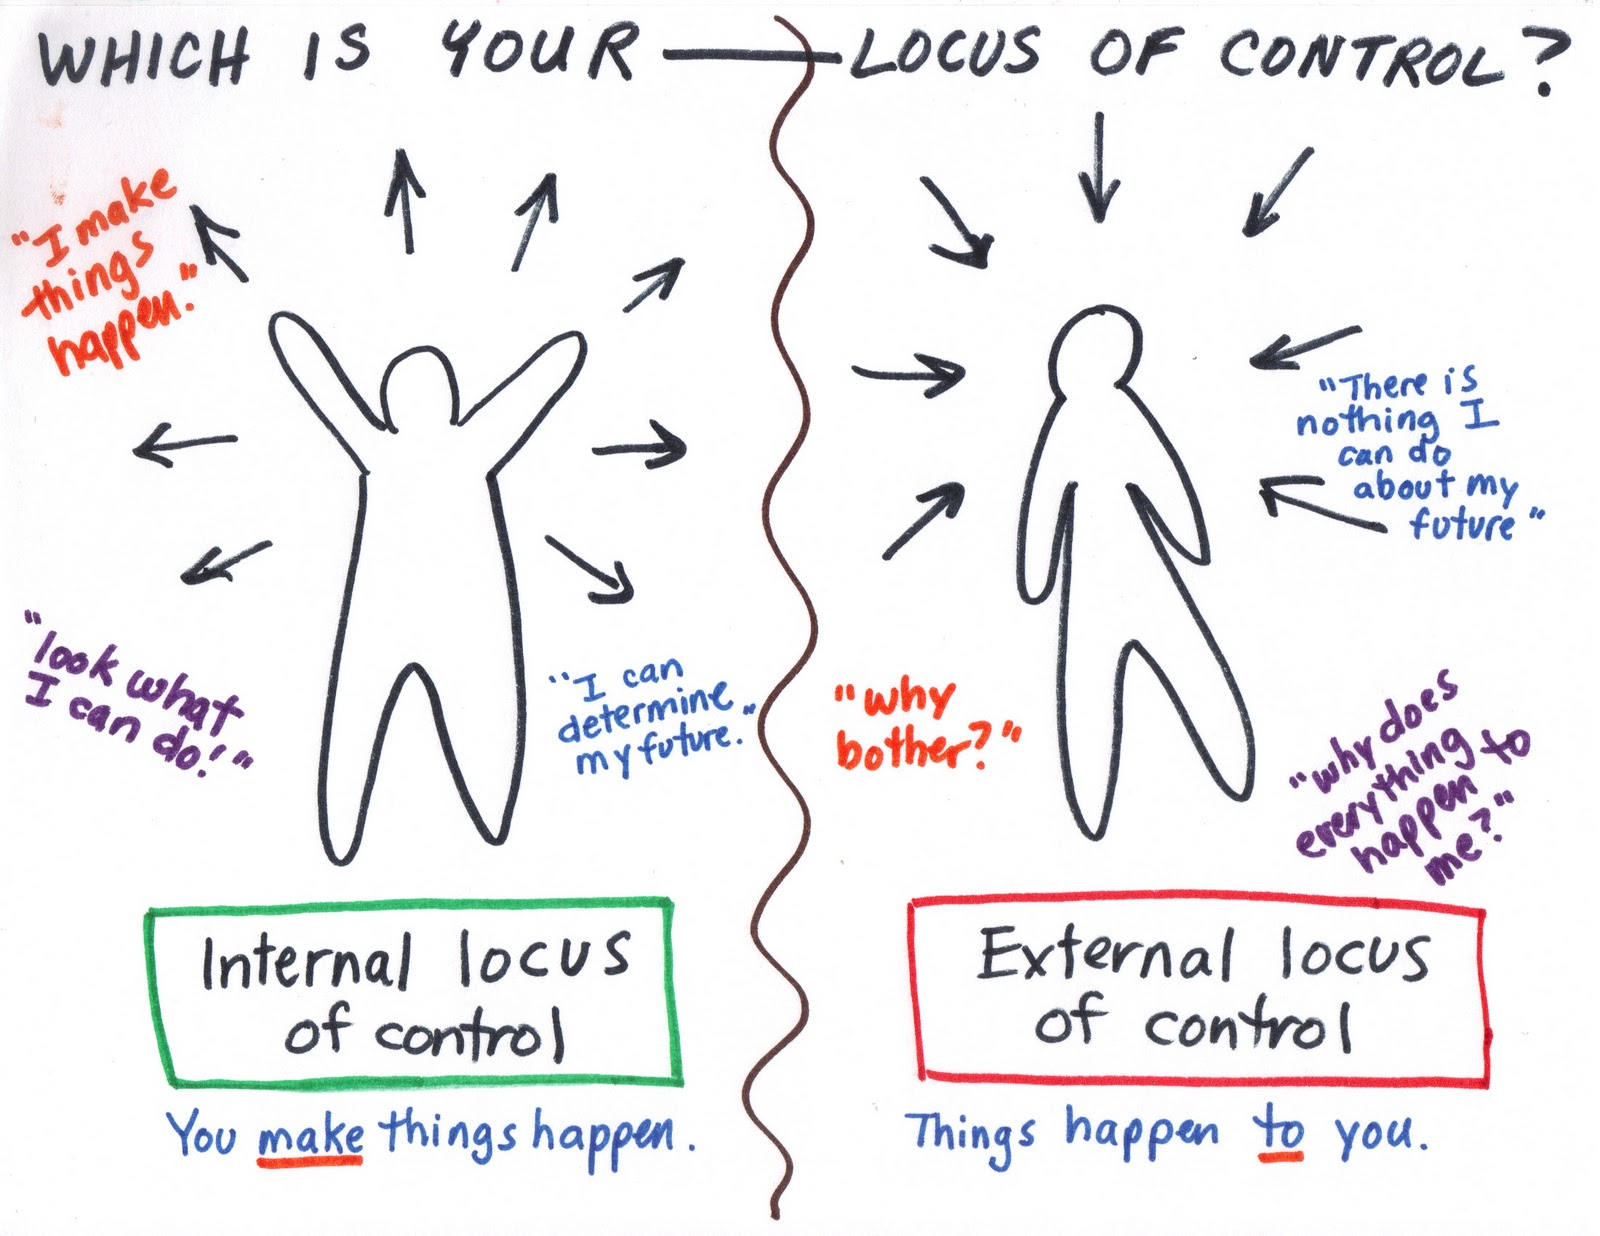 health locus of control scale pdf